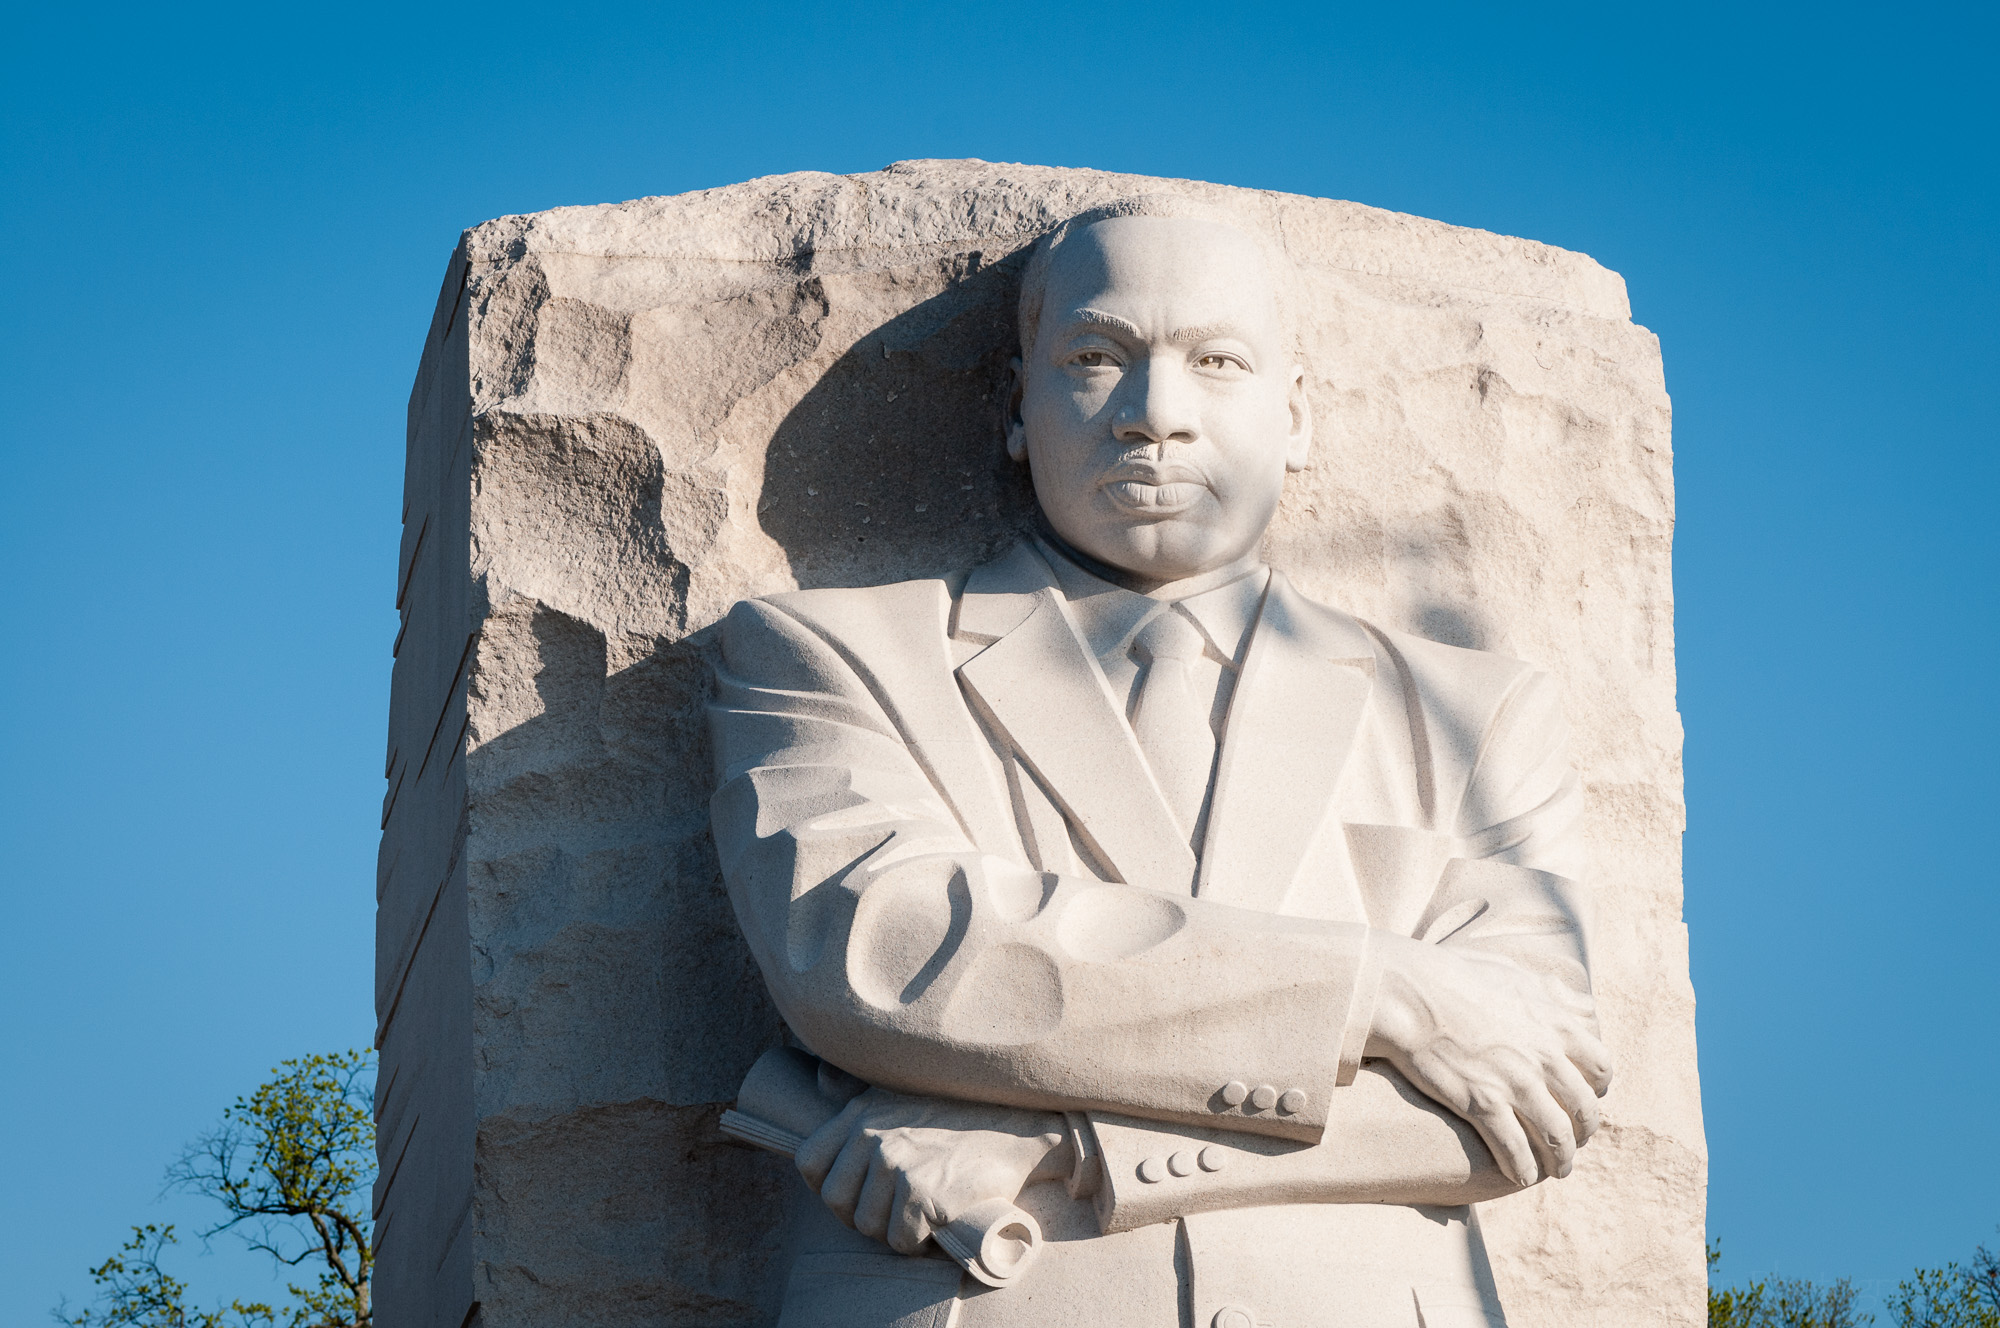 Sculpture at Martin Luther King, Jr. Memorial